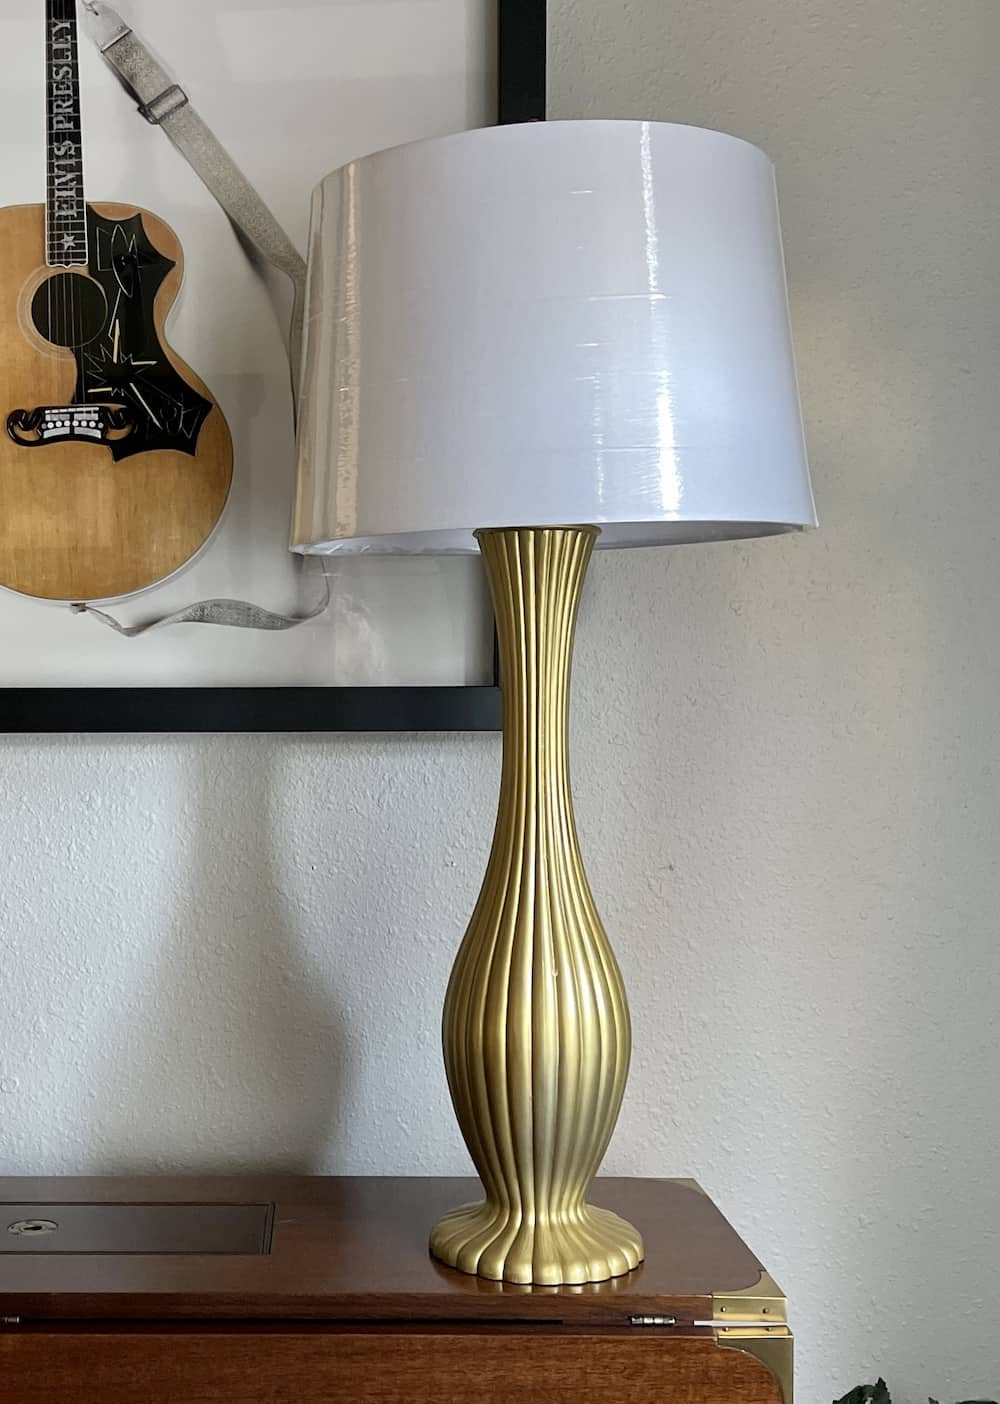 lamp after spray paint